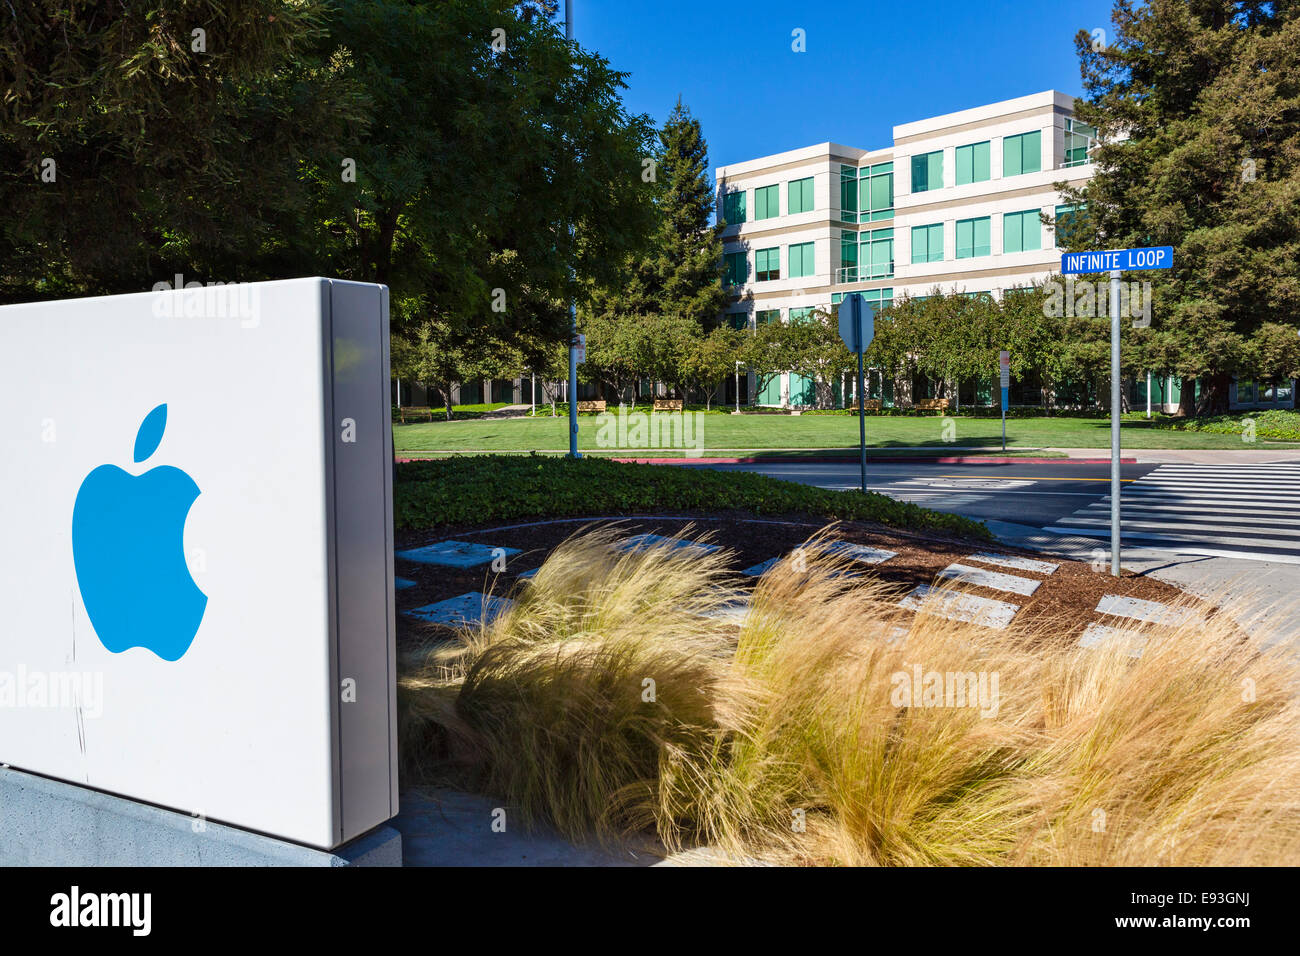 apple inc head office campus infinite loop cupertino california usa apple cupertino office